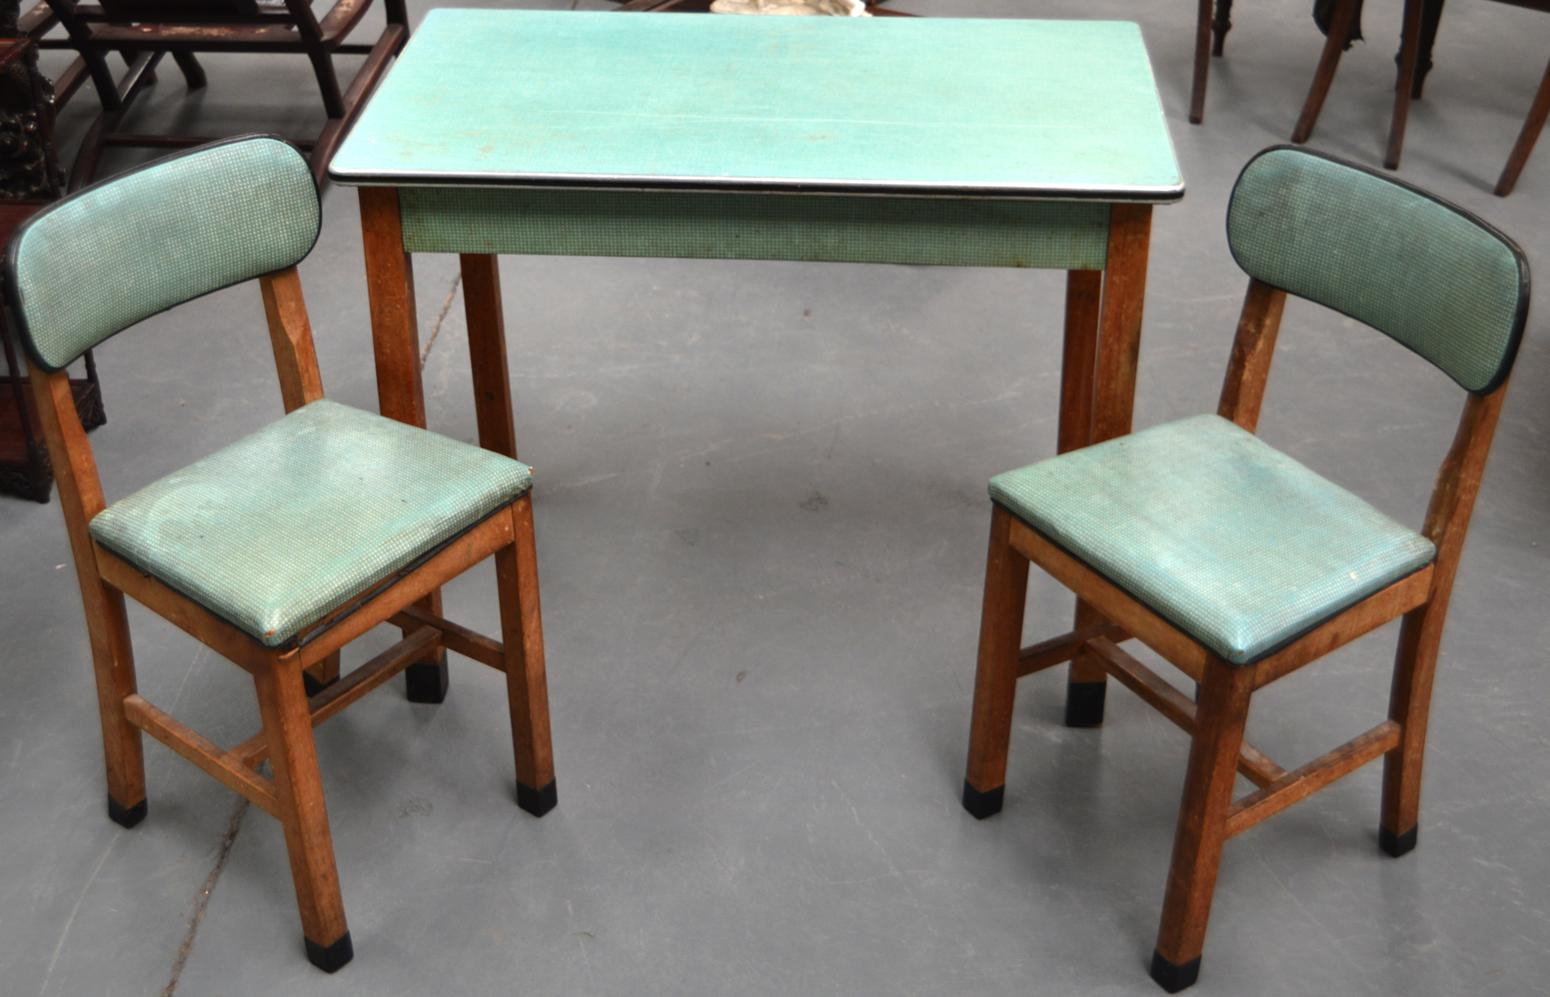 a retro 1940s/1950s kitchen table and two chairscantel, with